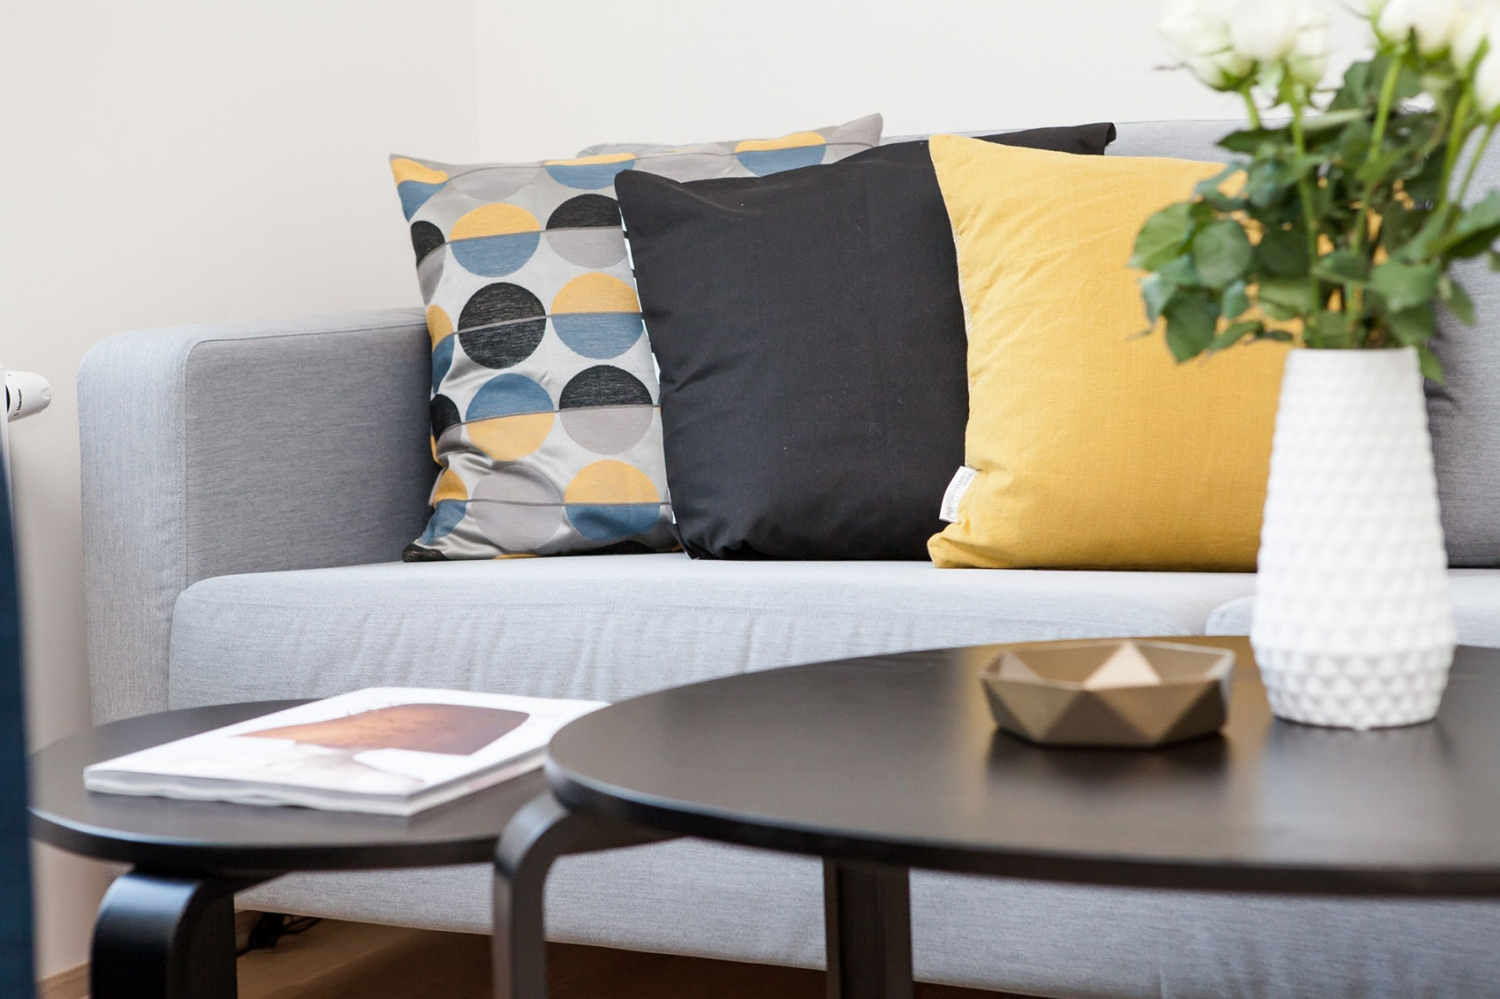 Low cost ways to improve your home's interior